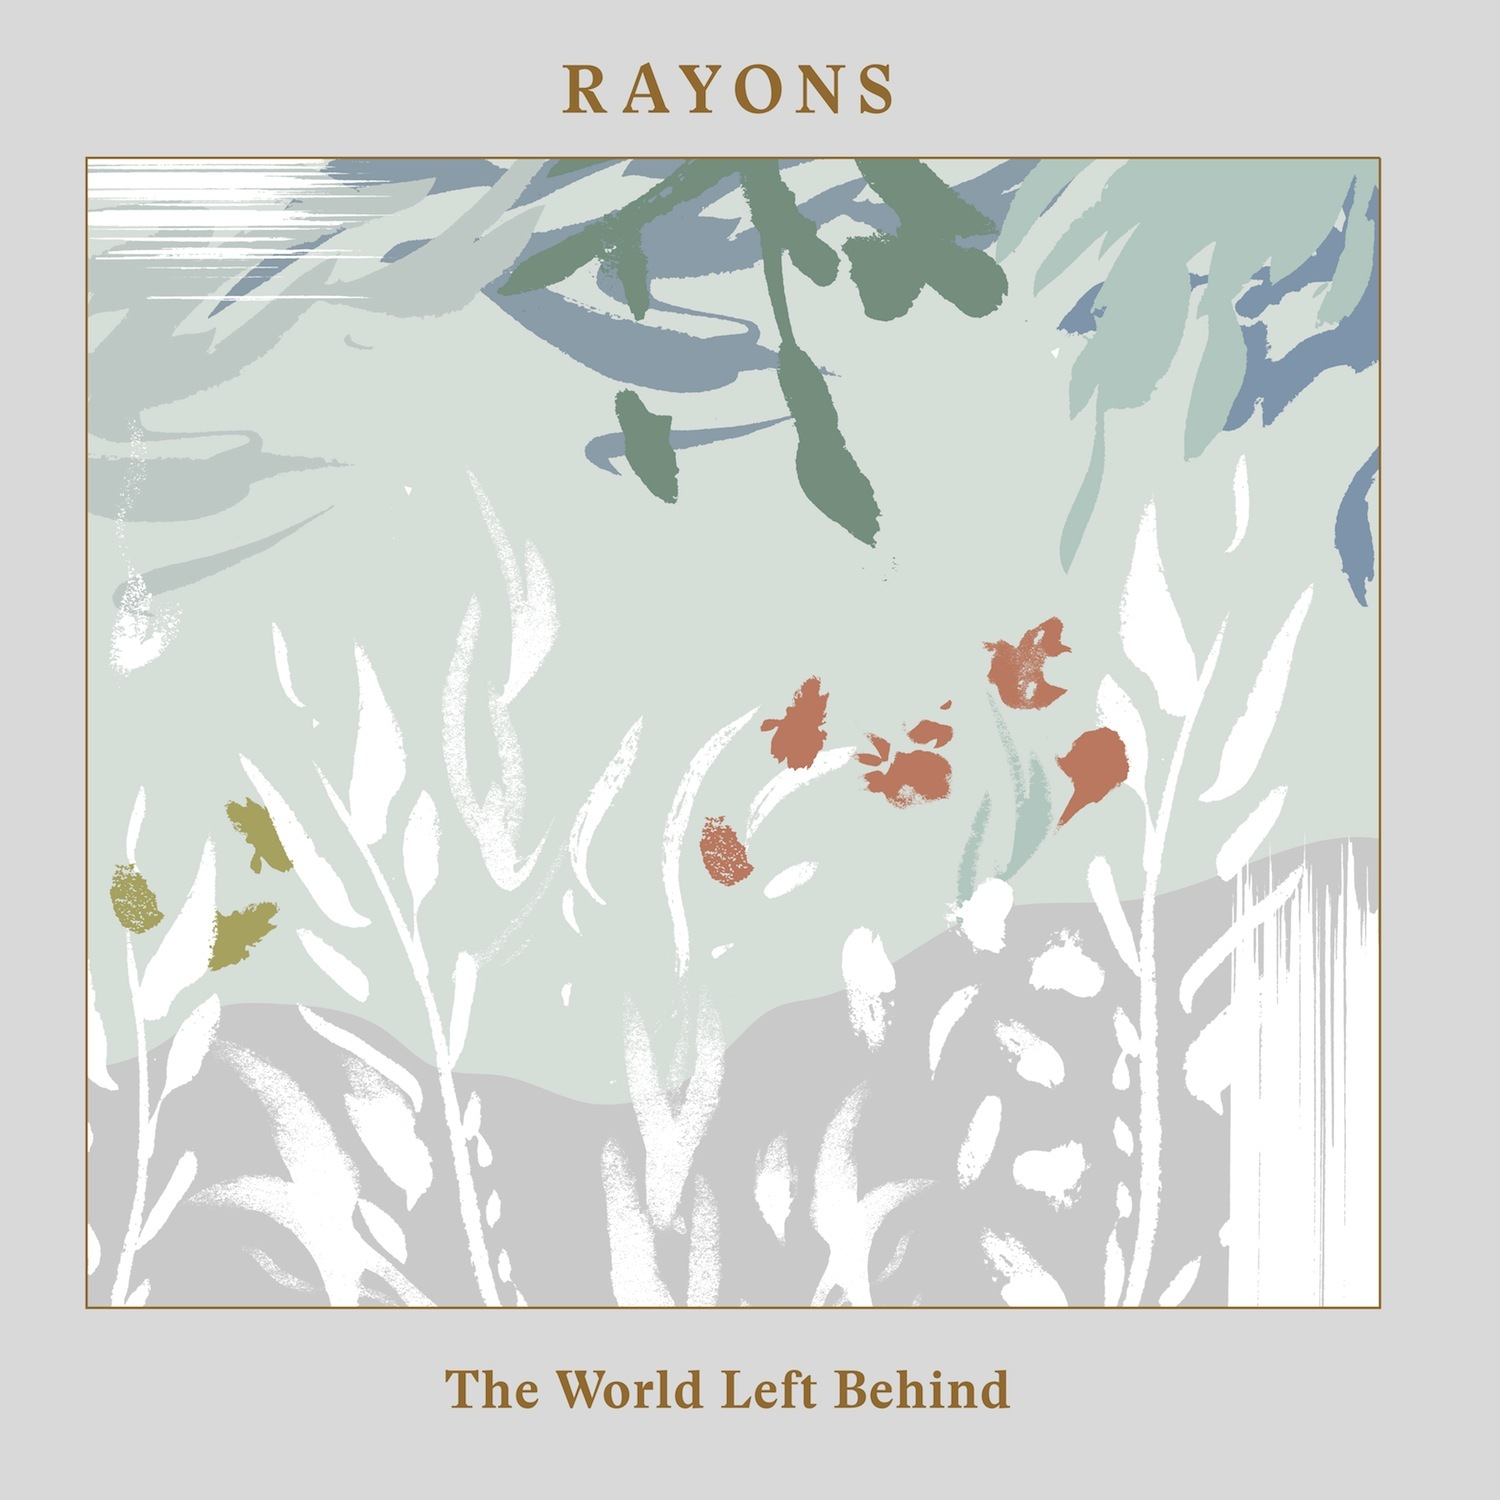 The World Left Behind | Rayons